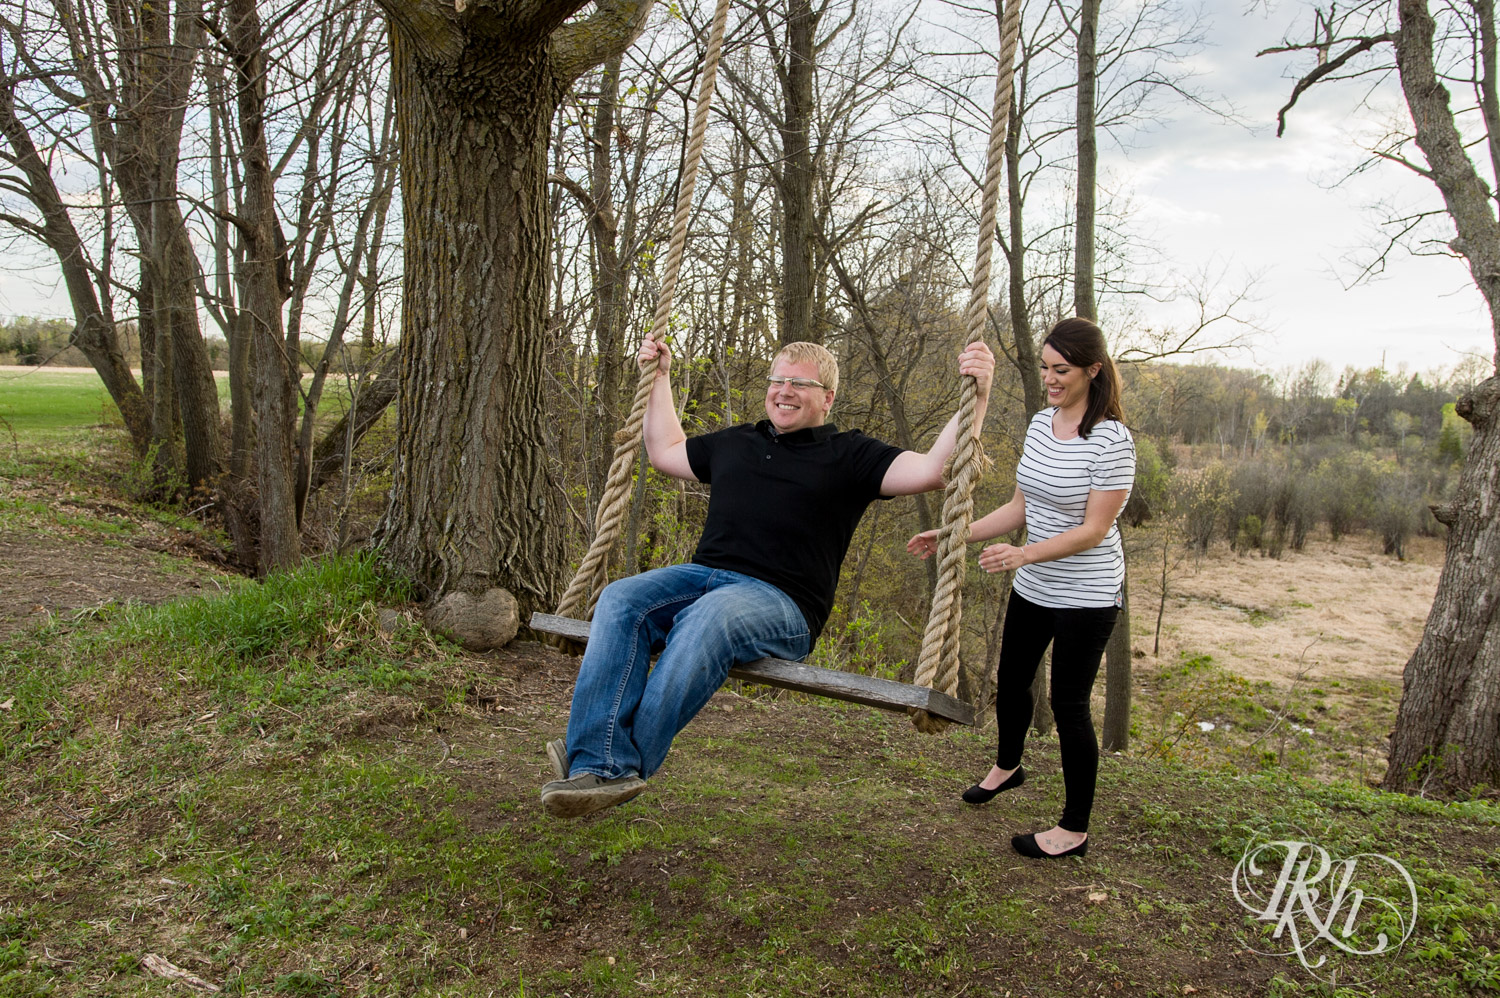 Chelsey & Erik - Minnesota Engagement Photography - Creekside Farm and Events - Rush City - RKH Images  (16 of 18).jpg